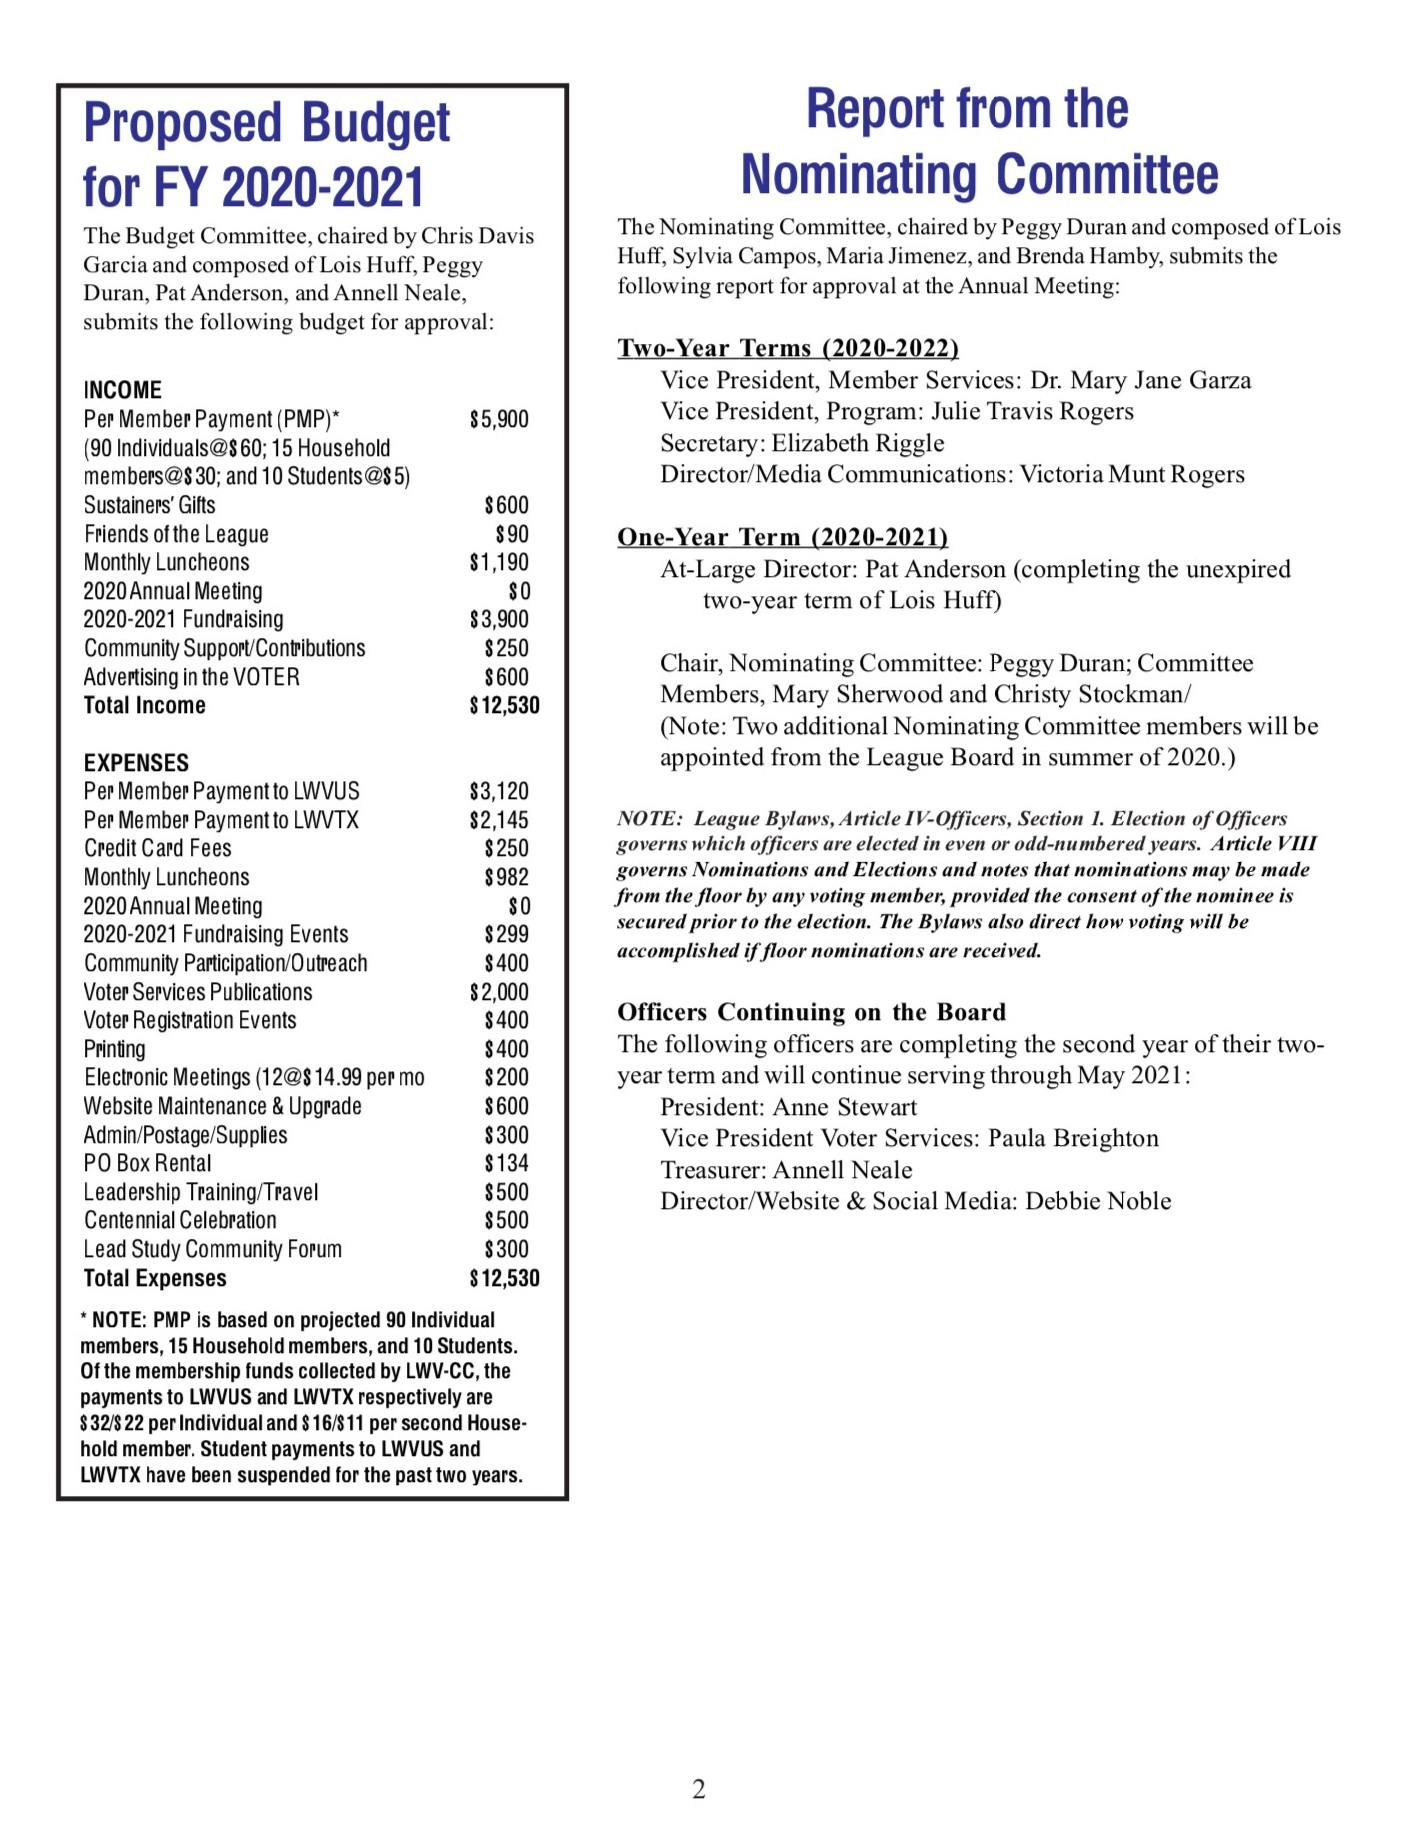 Annual Meeting Info page 2